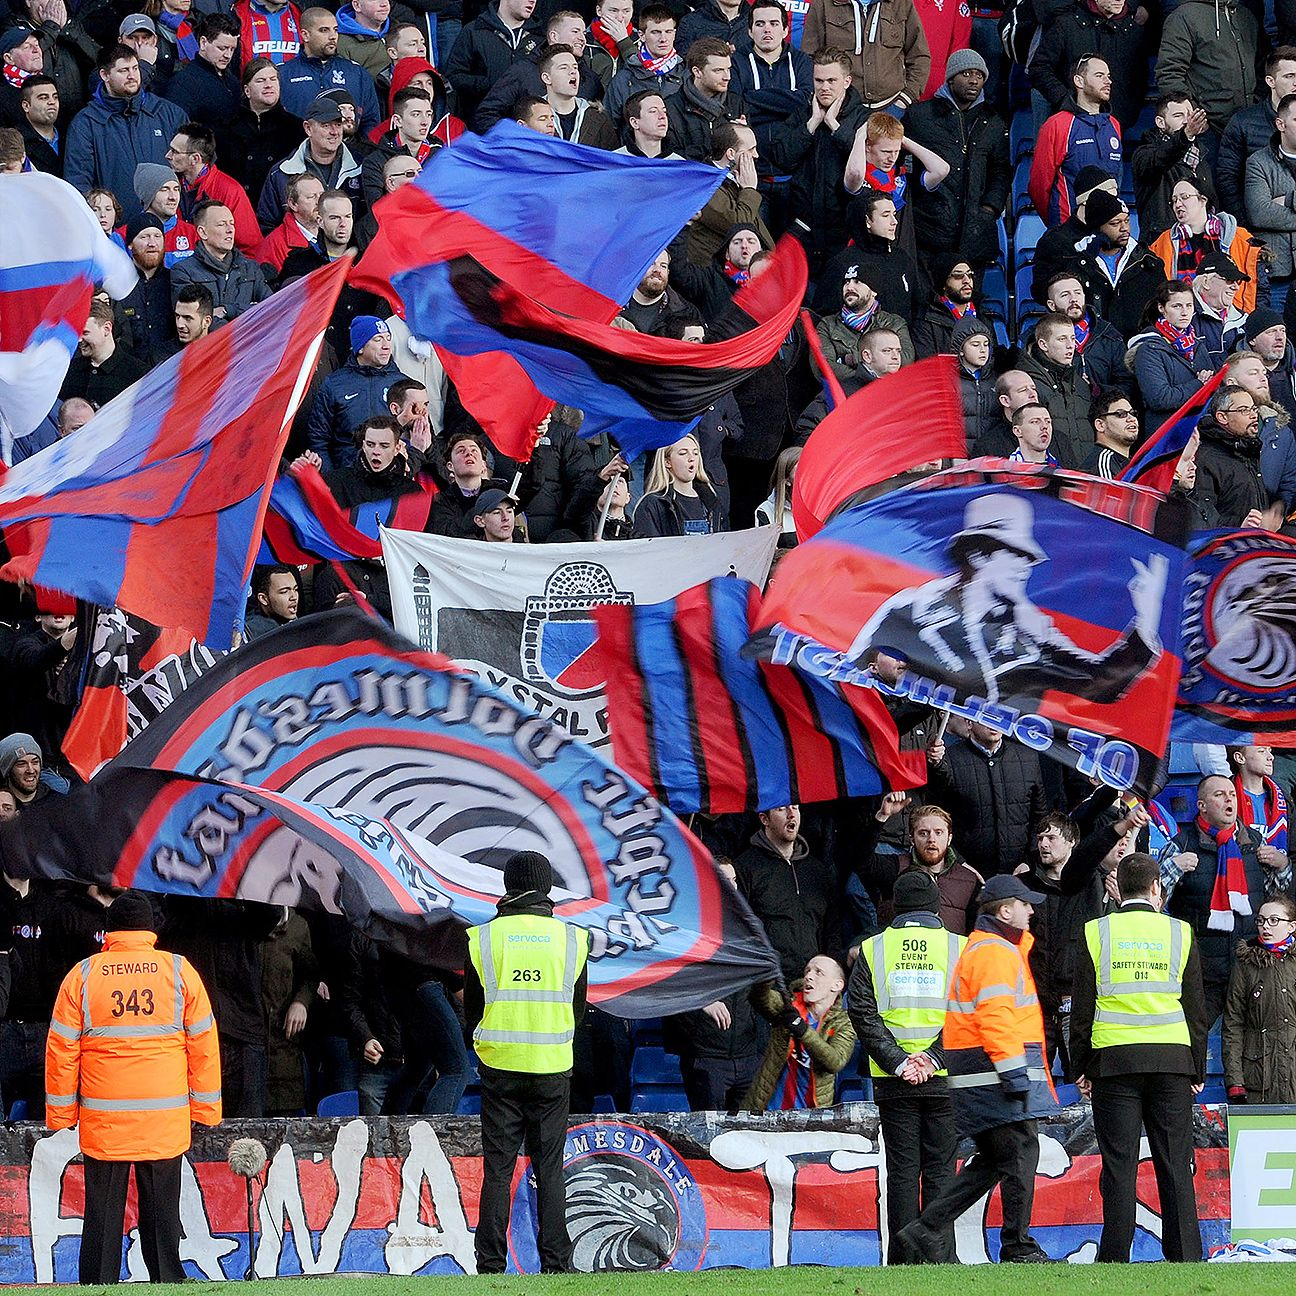 The new loyalty scheme set up by Crystal Palace has rankled members of the fan base.